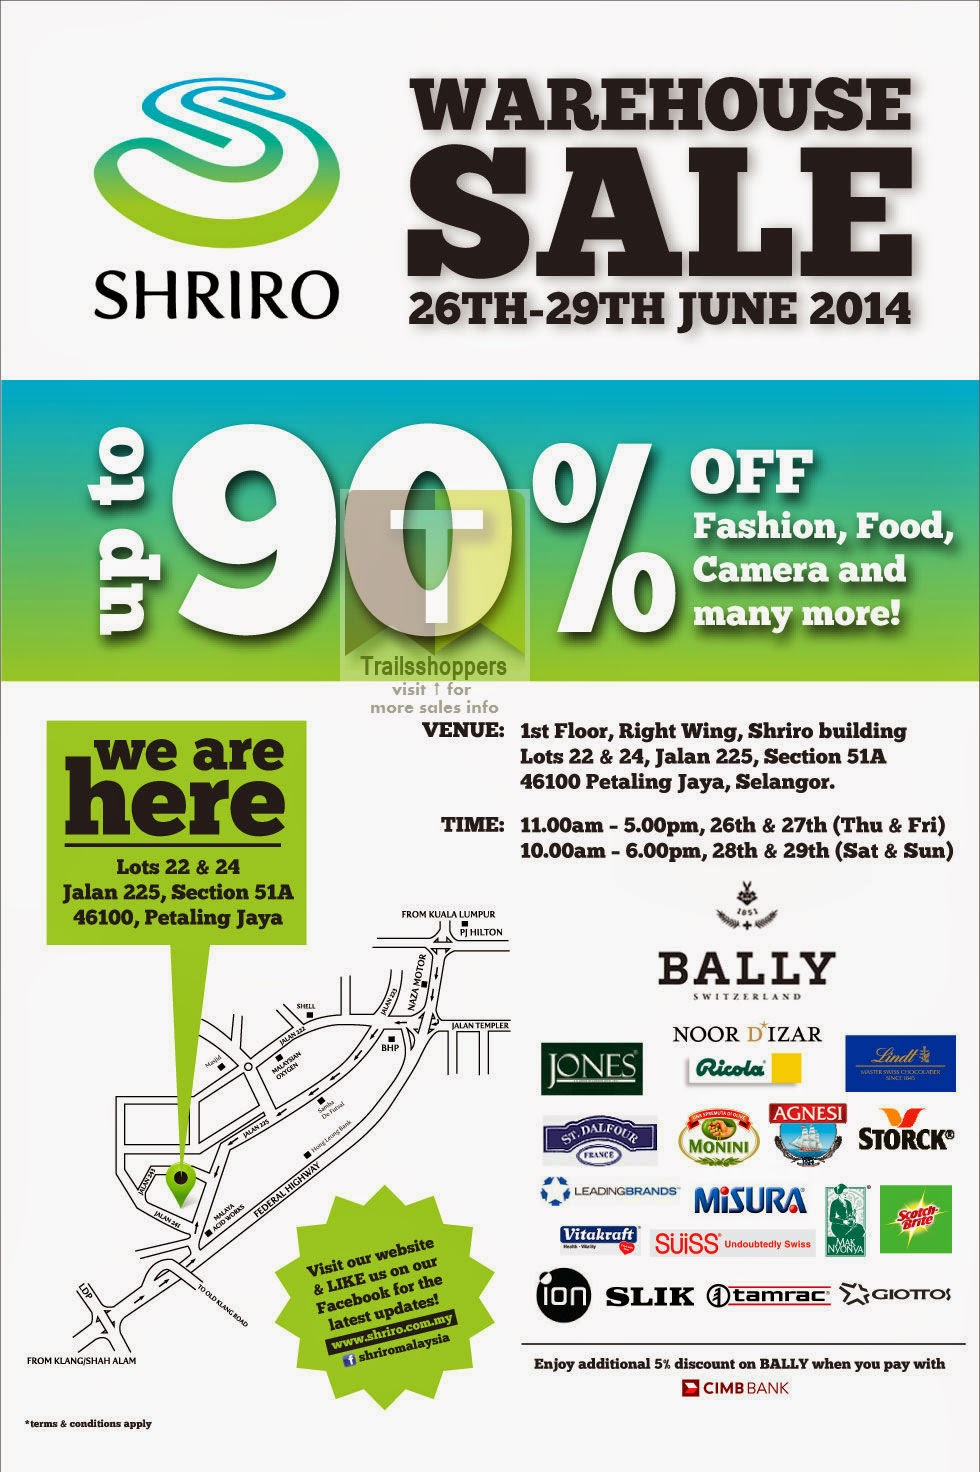 Shriro Warehouse Sale 1st Floor, Right Wing, Shriro Building